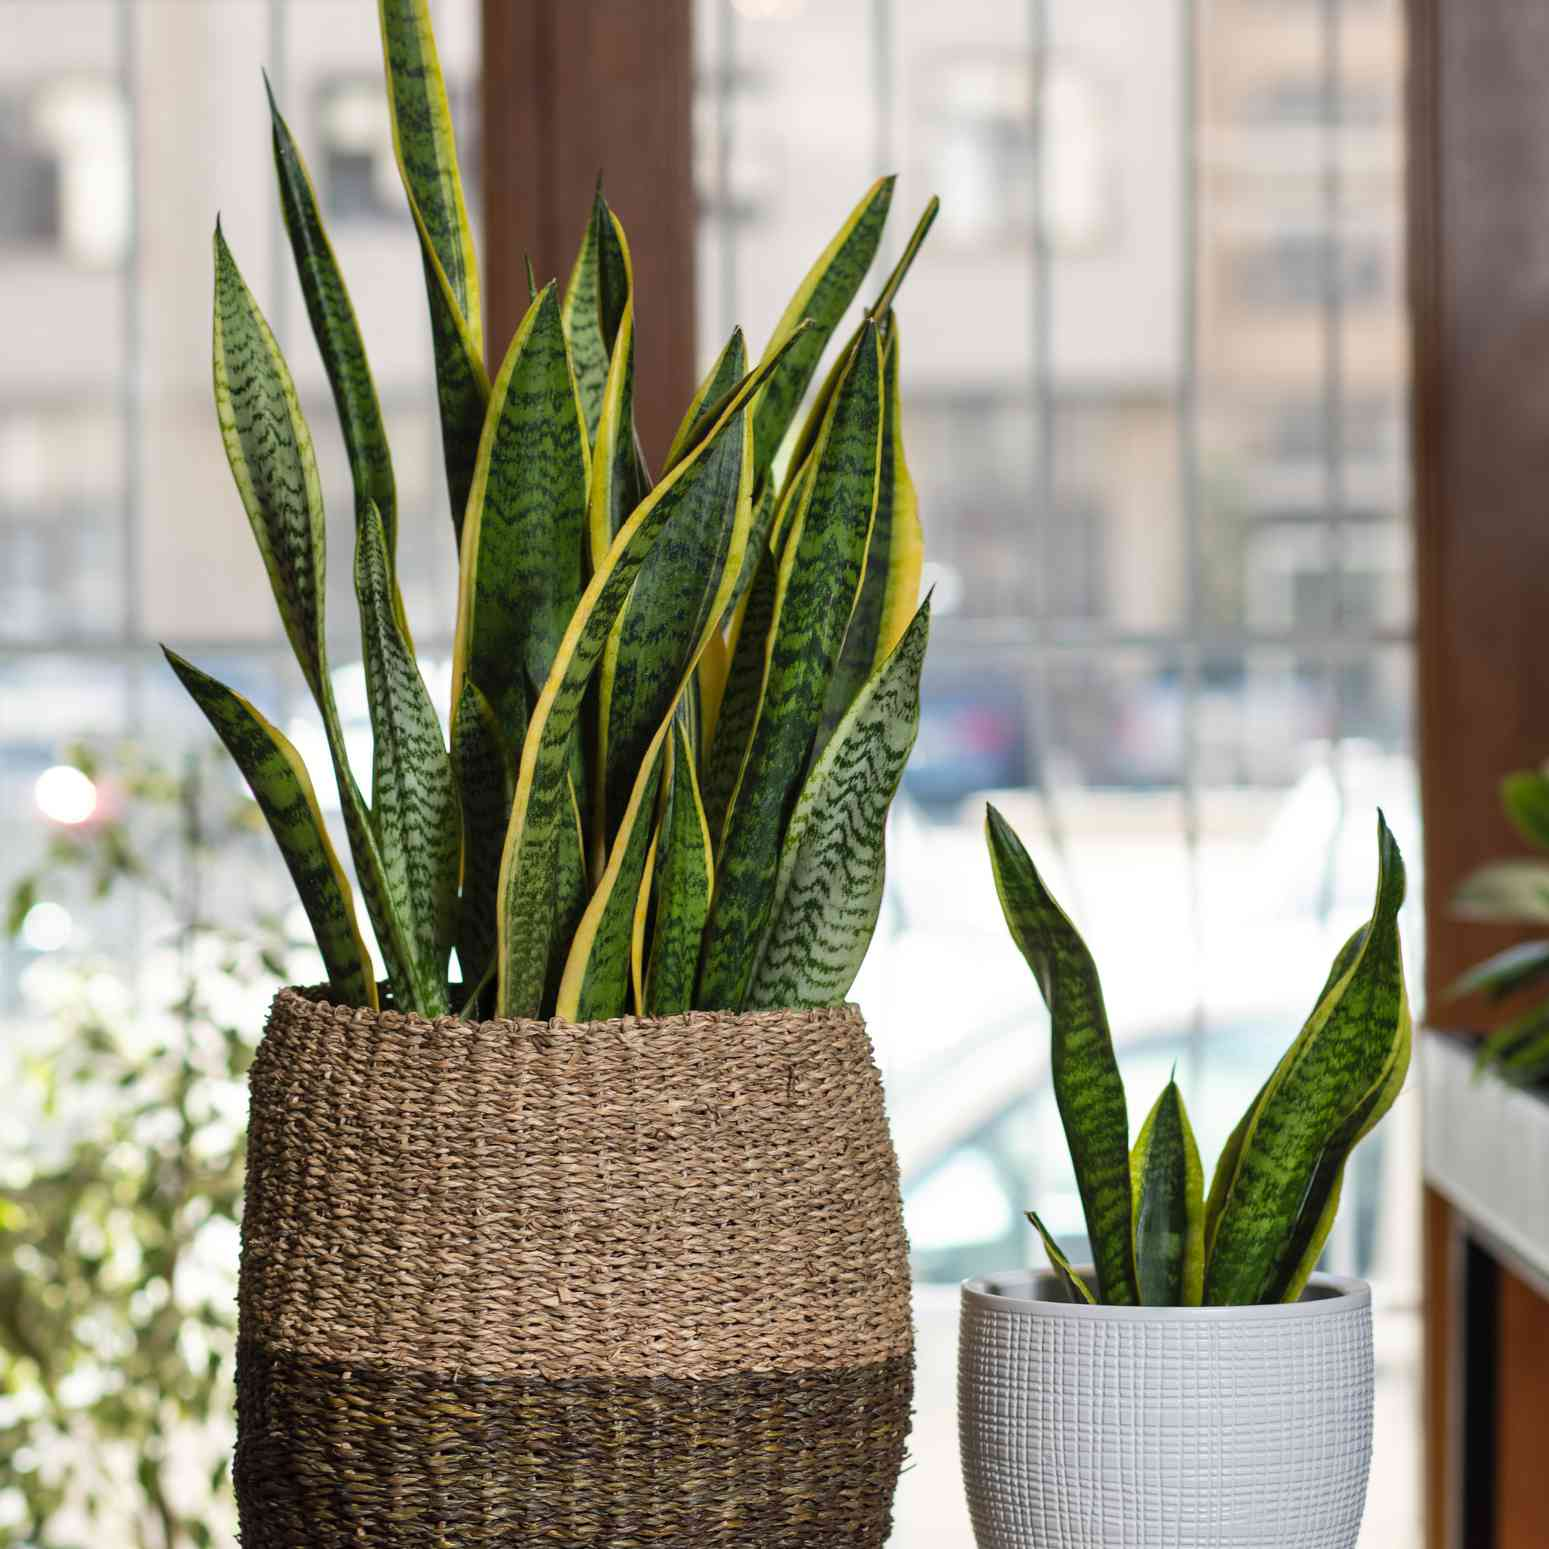 A large snake plant in a basket and a small one in a pot